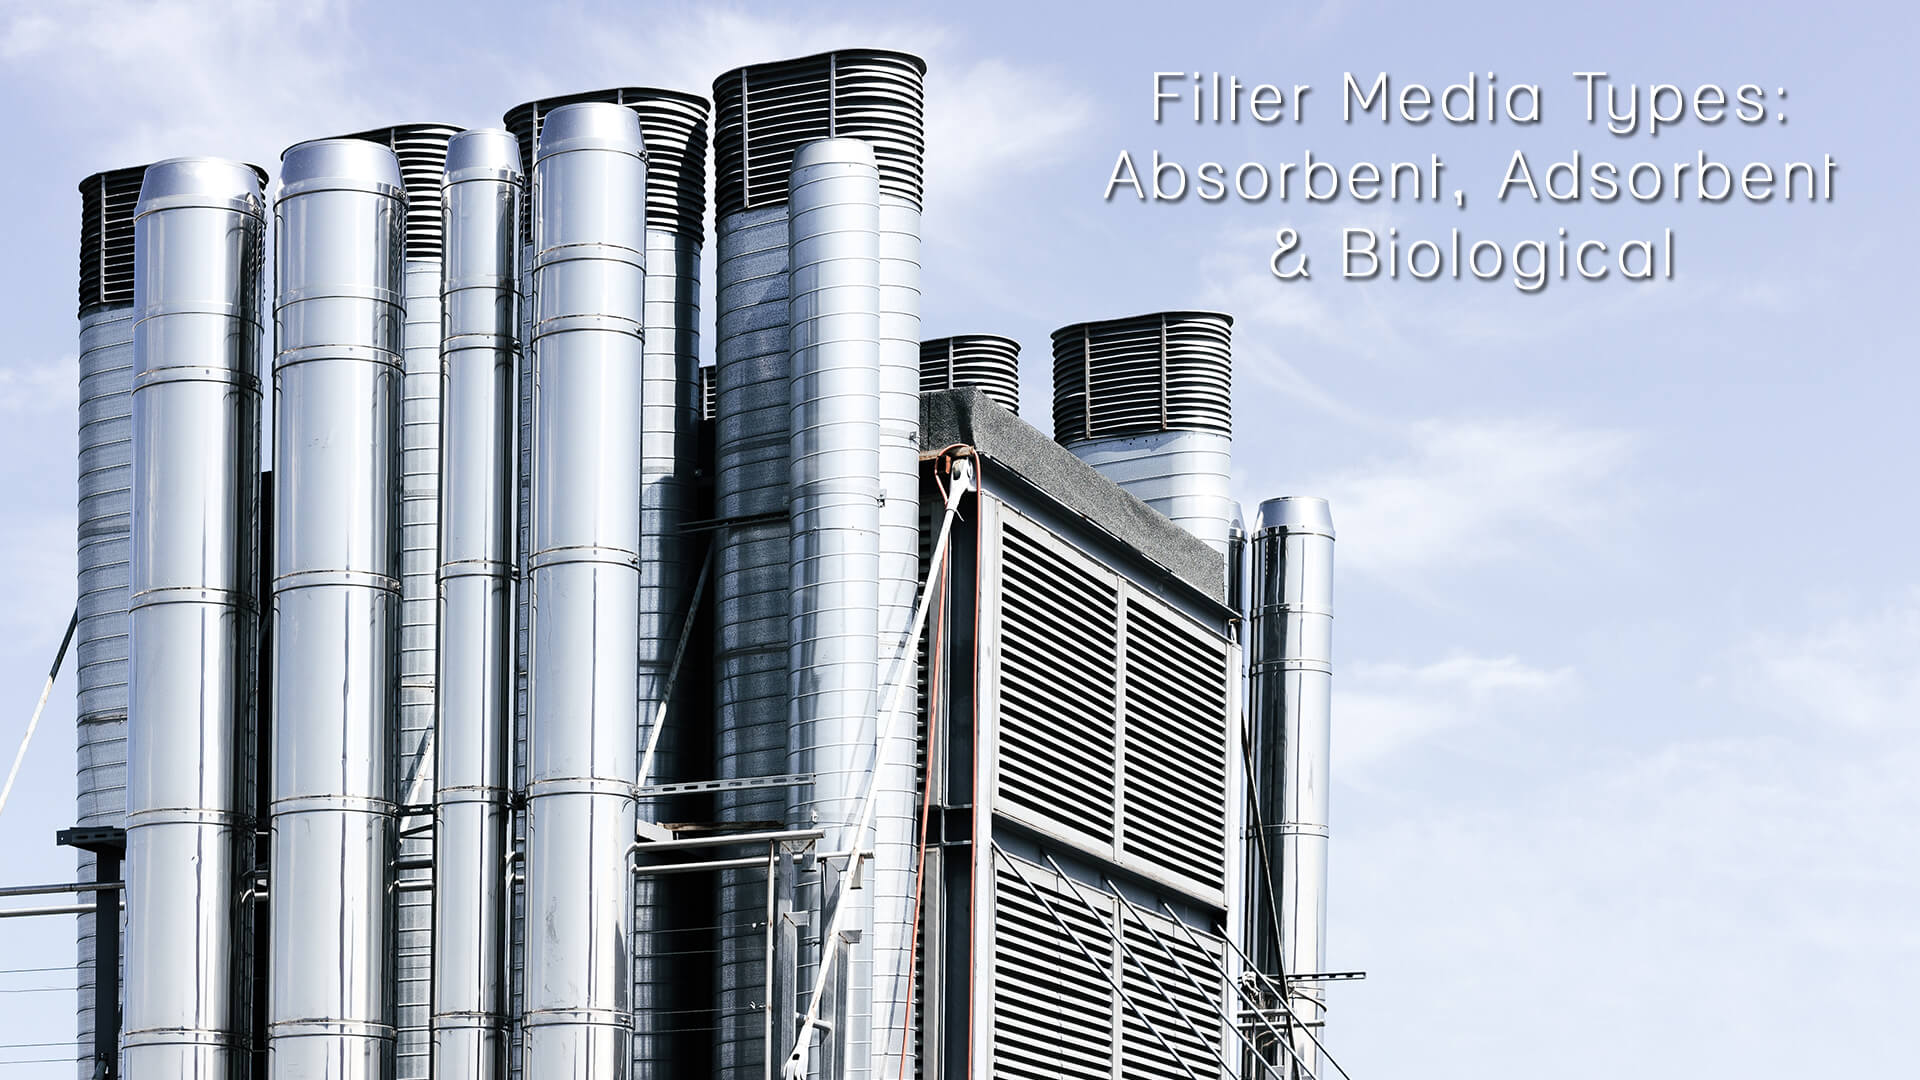 Filter Media Types – Absorbent, Adsorbent and Biological